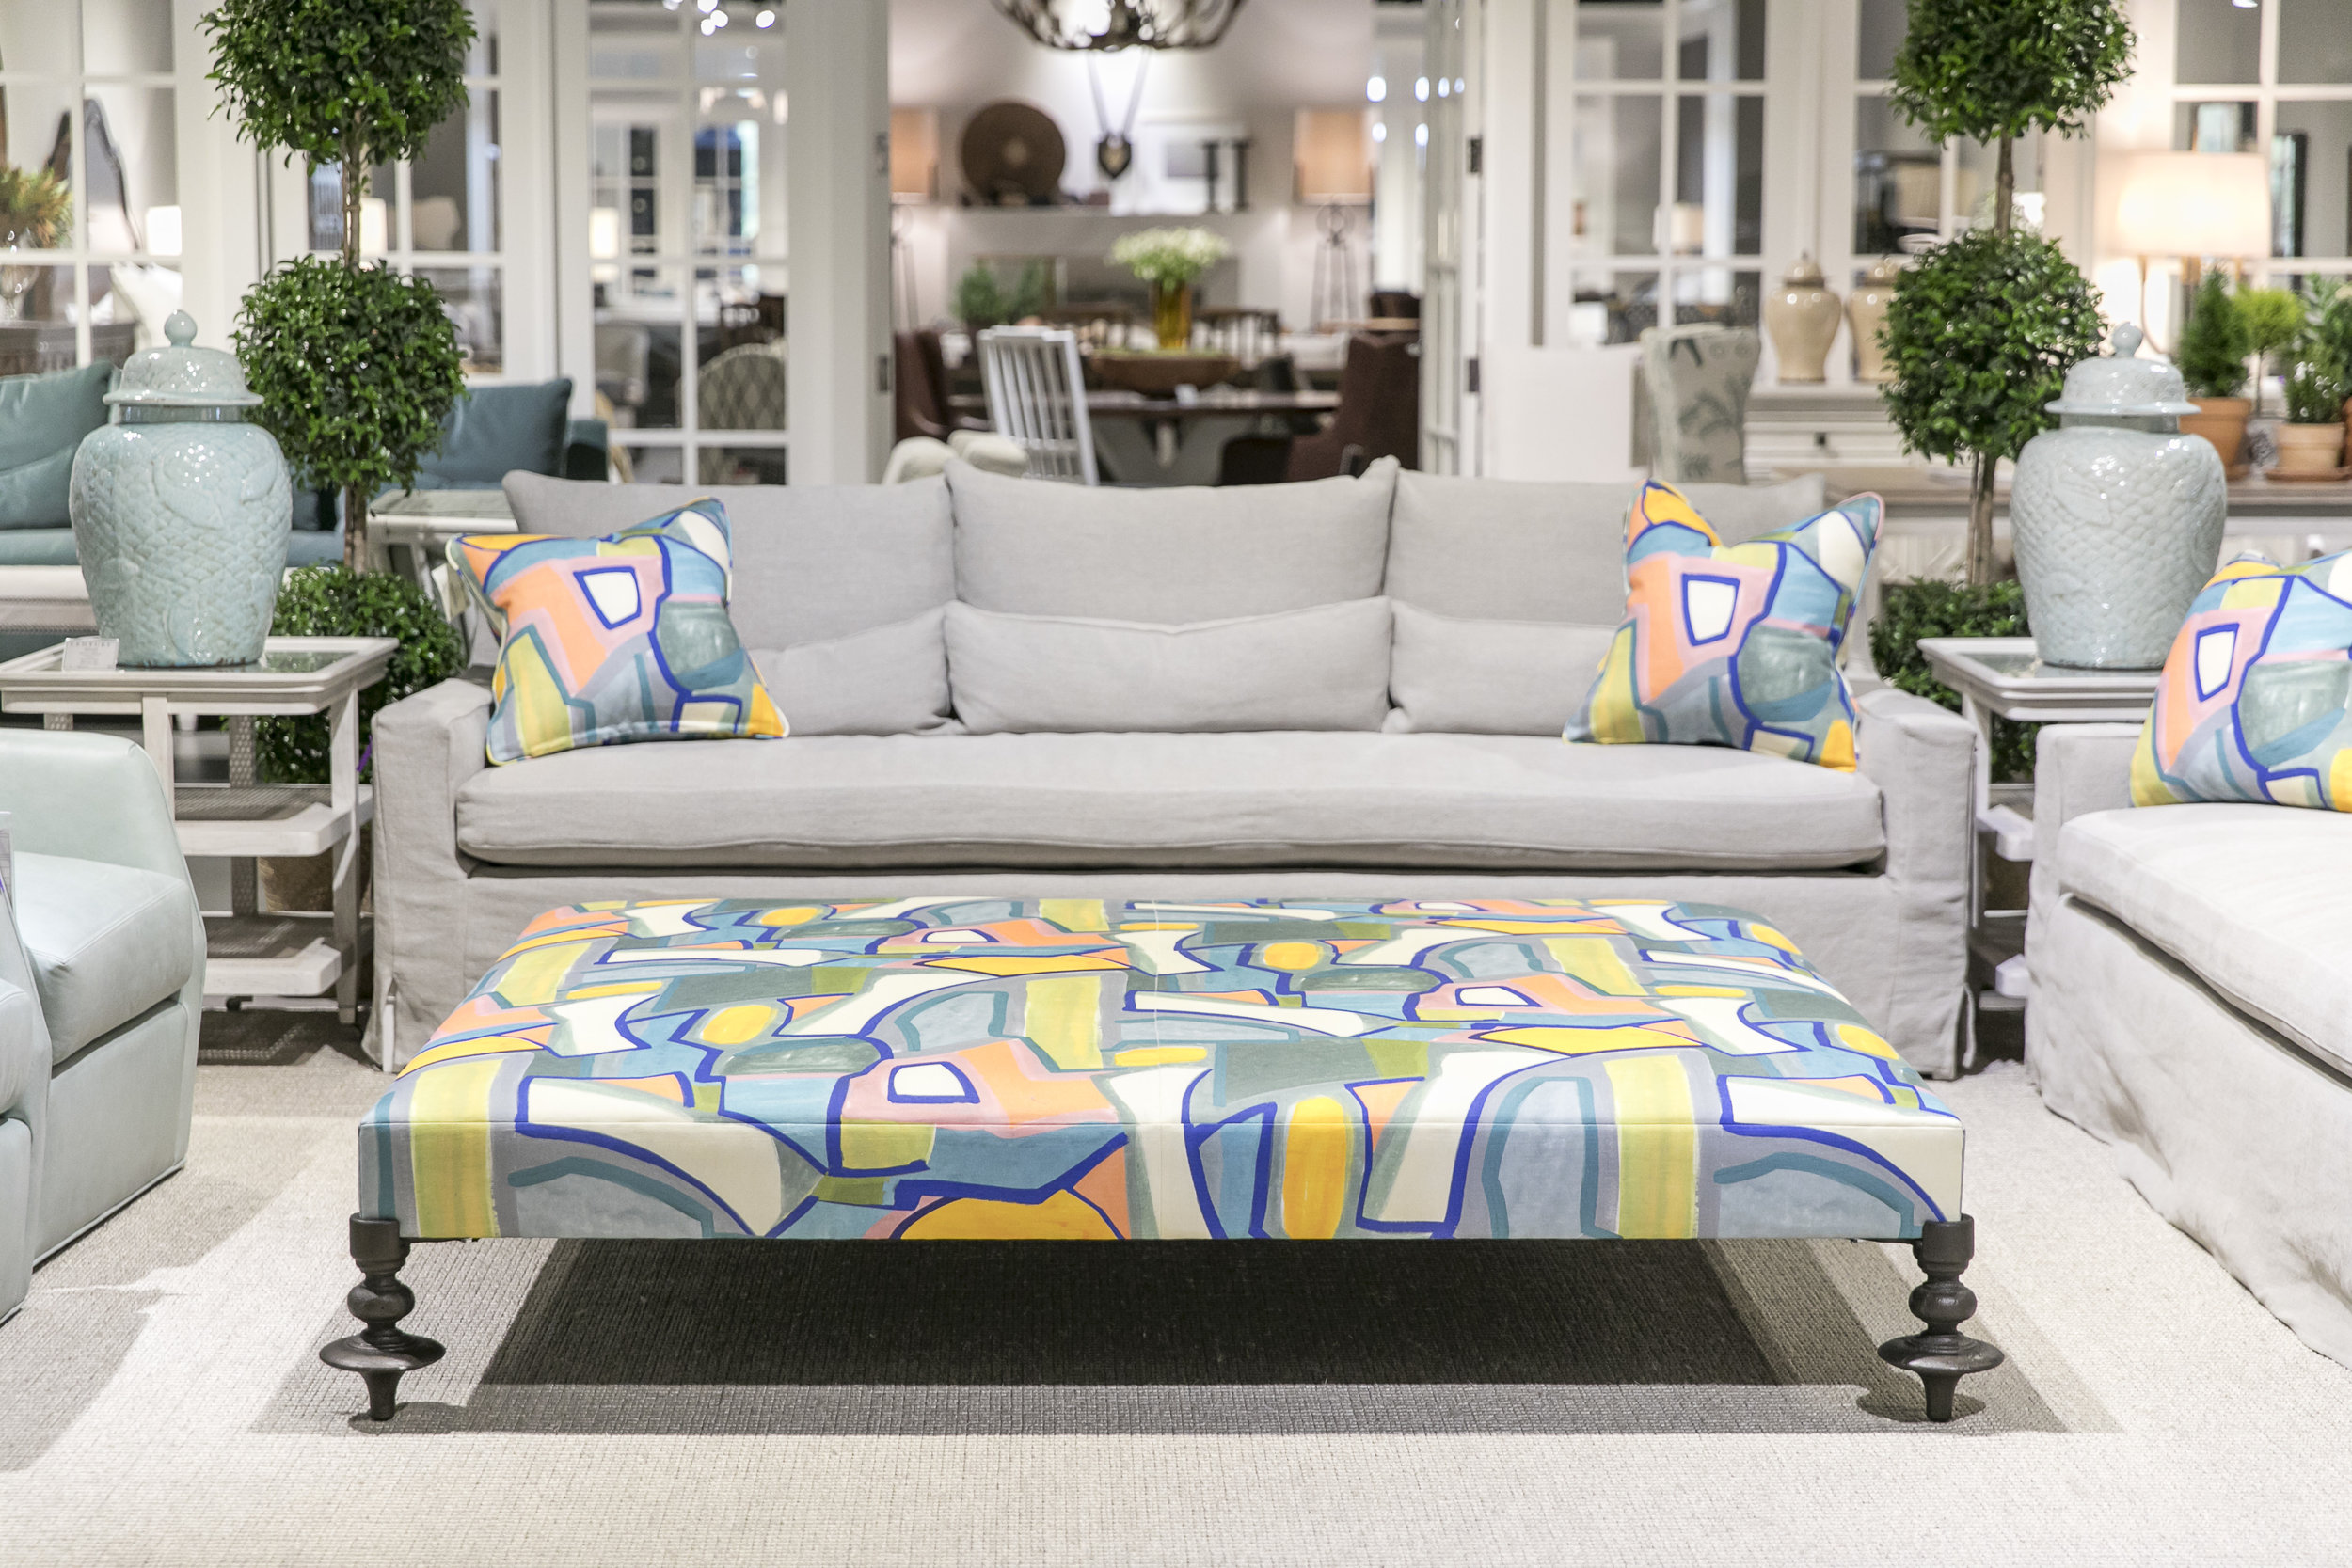 Century Showroom Vignette featuring the Boheme Ottoman and Shae Large Sofa